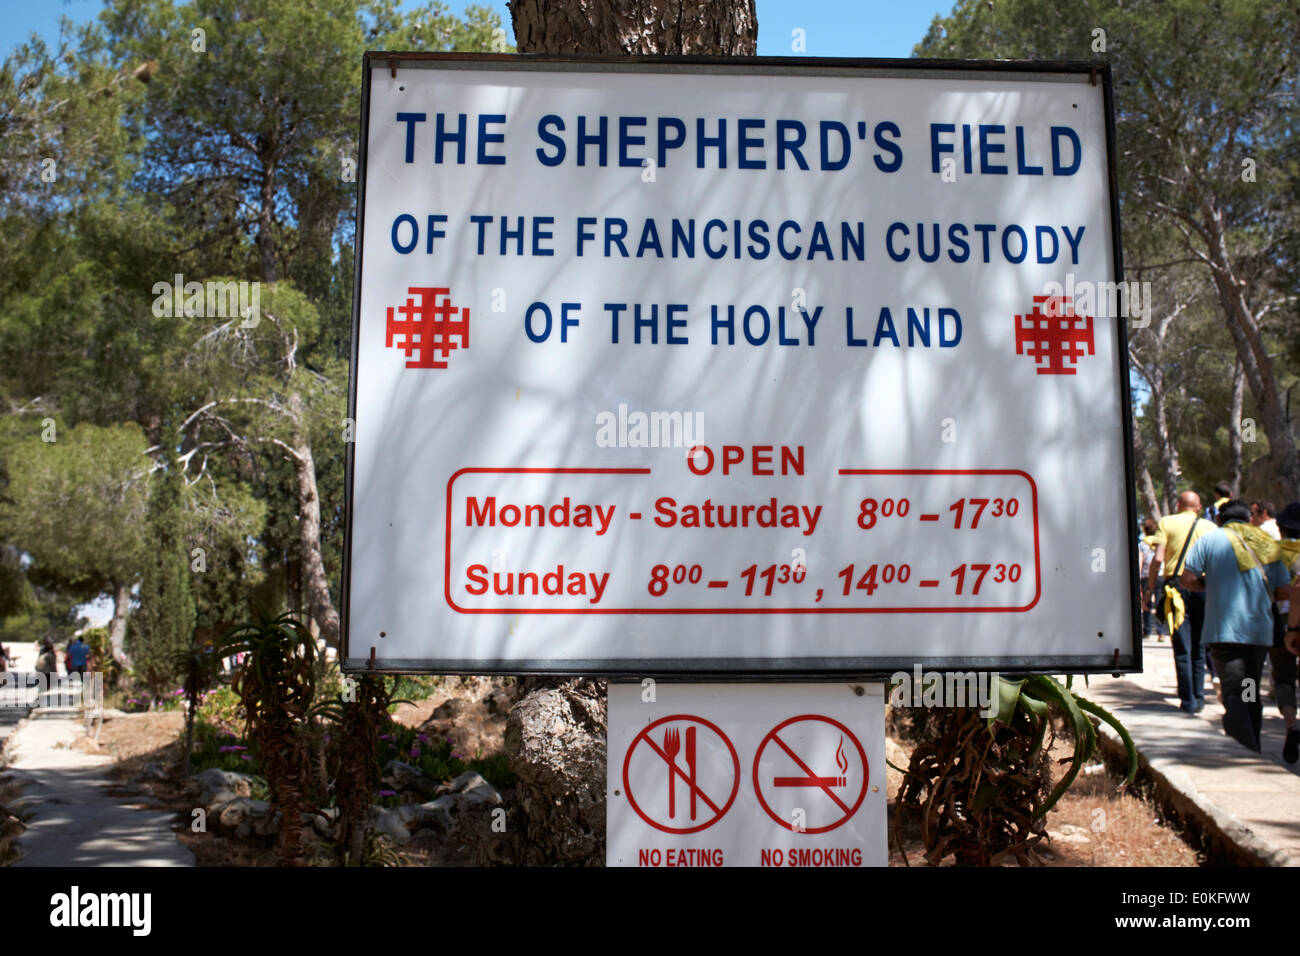 Sign for The Shepherd's Field of the Franciscan  Custody of the Holy Land - Stock Image